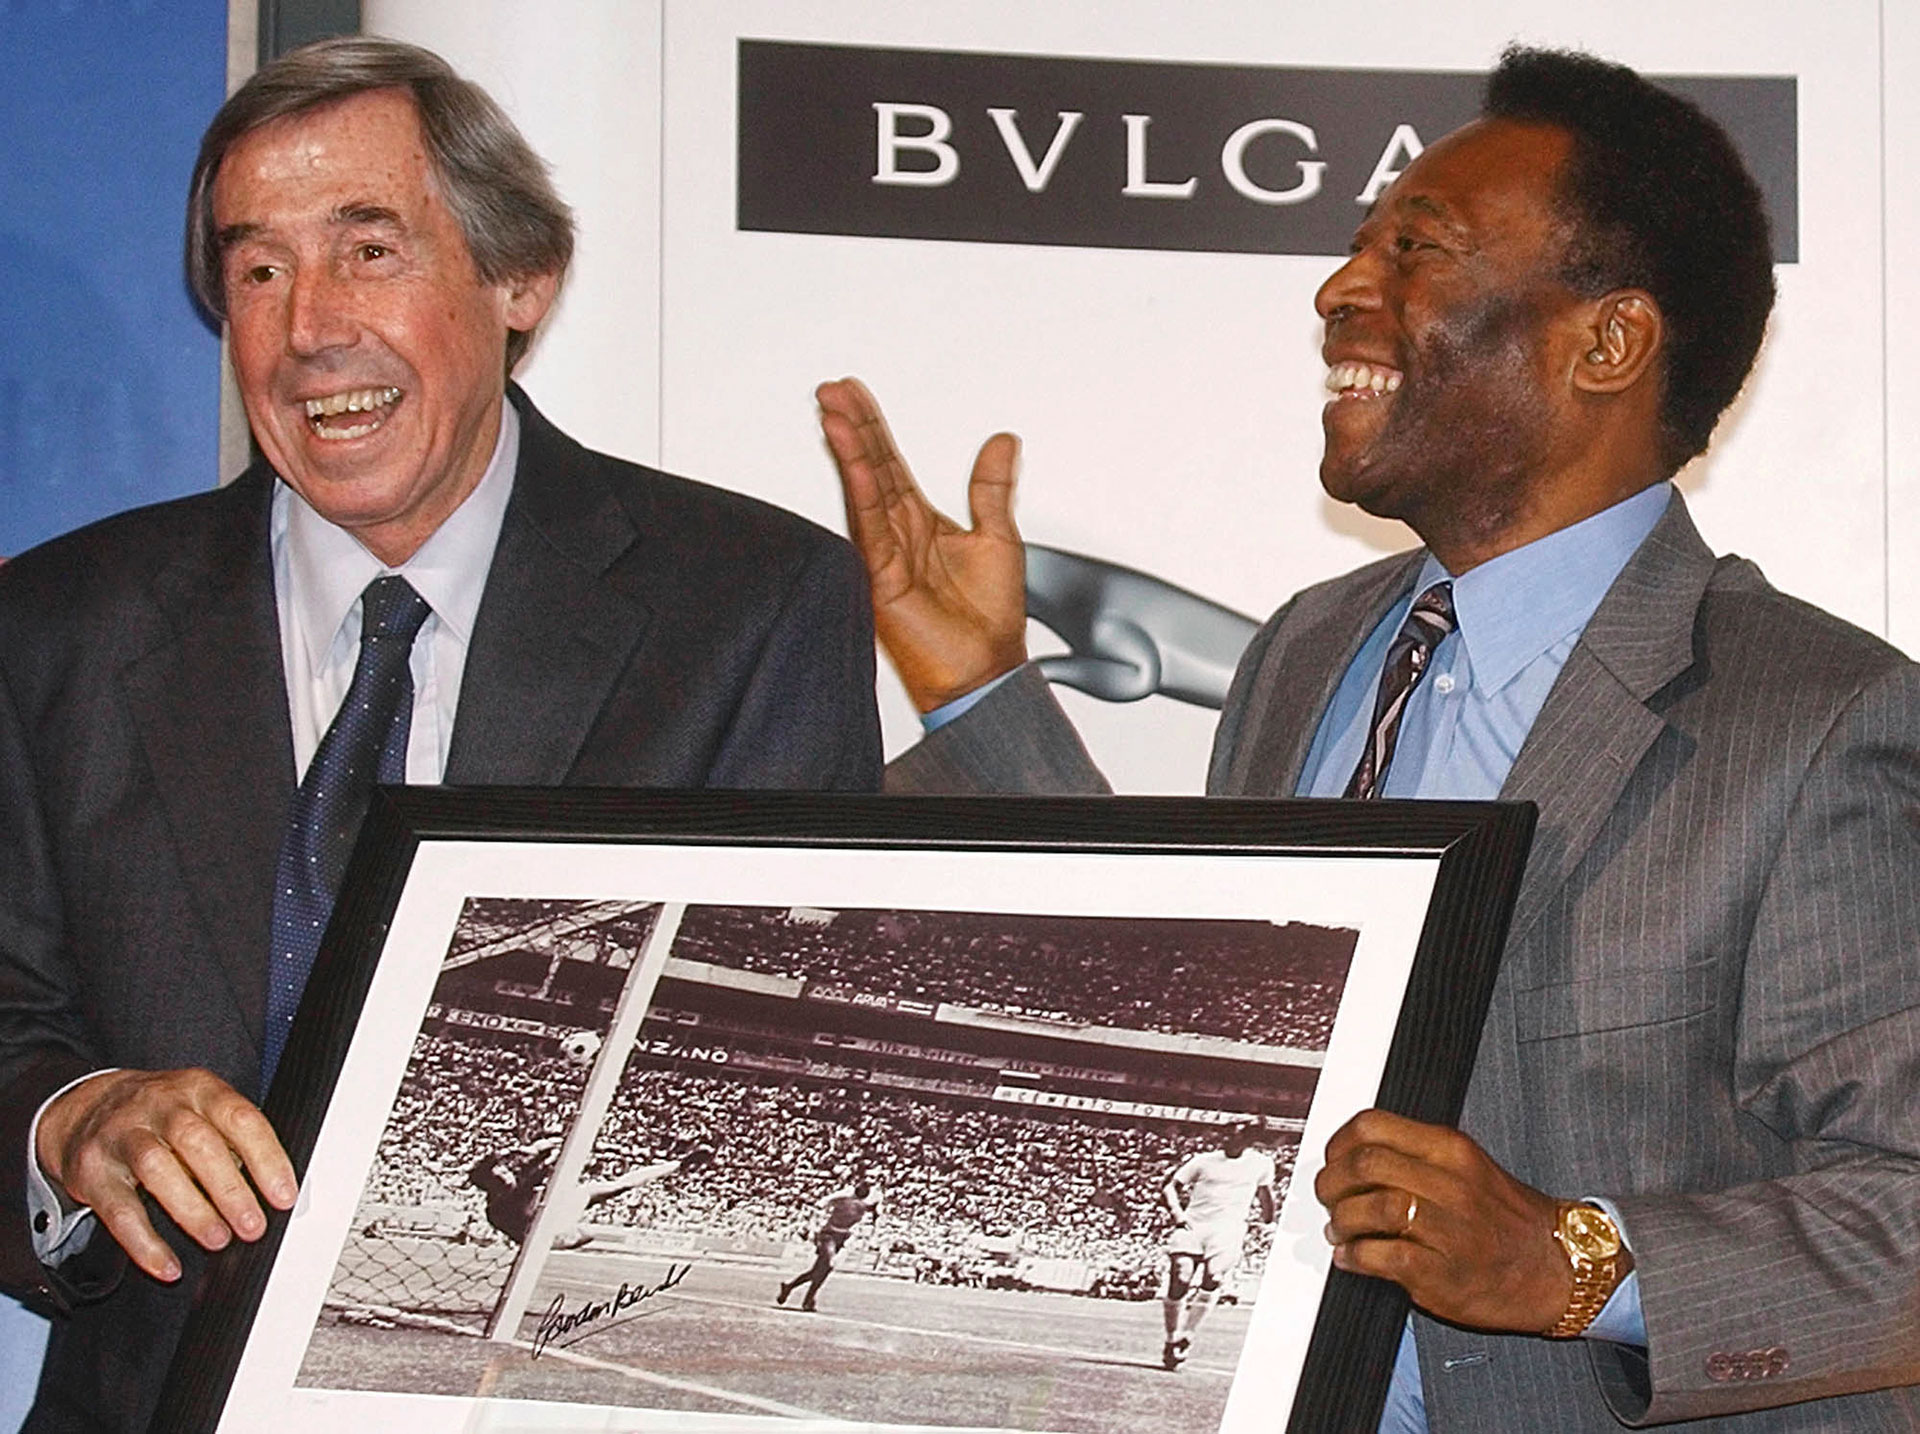 Gordon Banks y Pelé recordando la memorable jugada que involucra a ambos (AP)